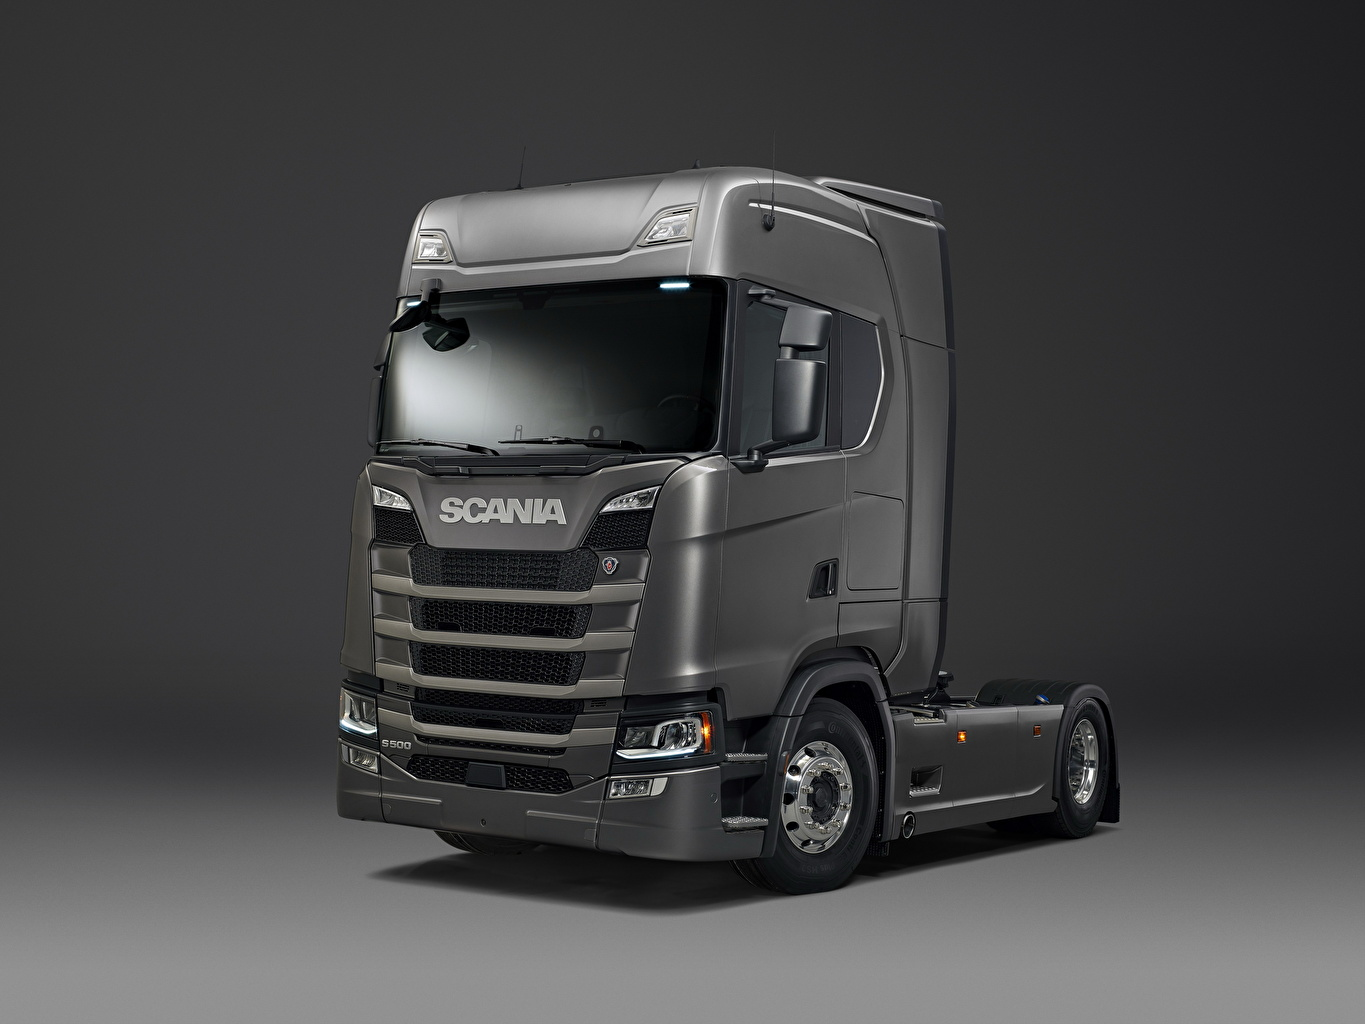 Picture Trucks Scania S 500 gray automobile lorry Grey Cars auto